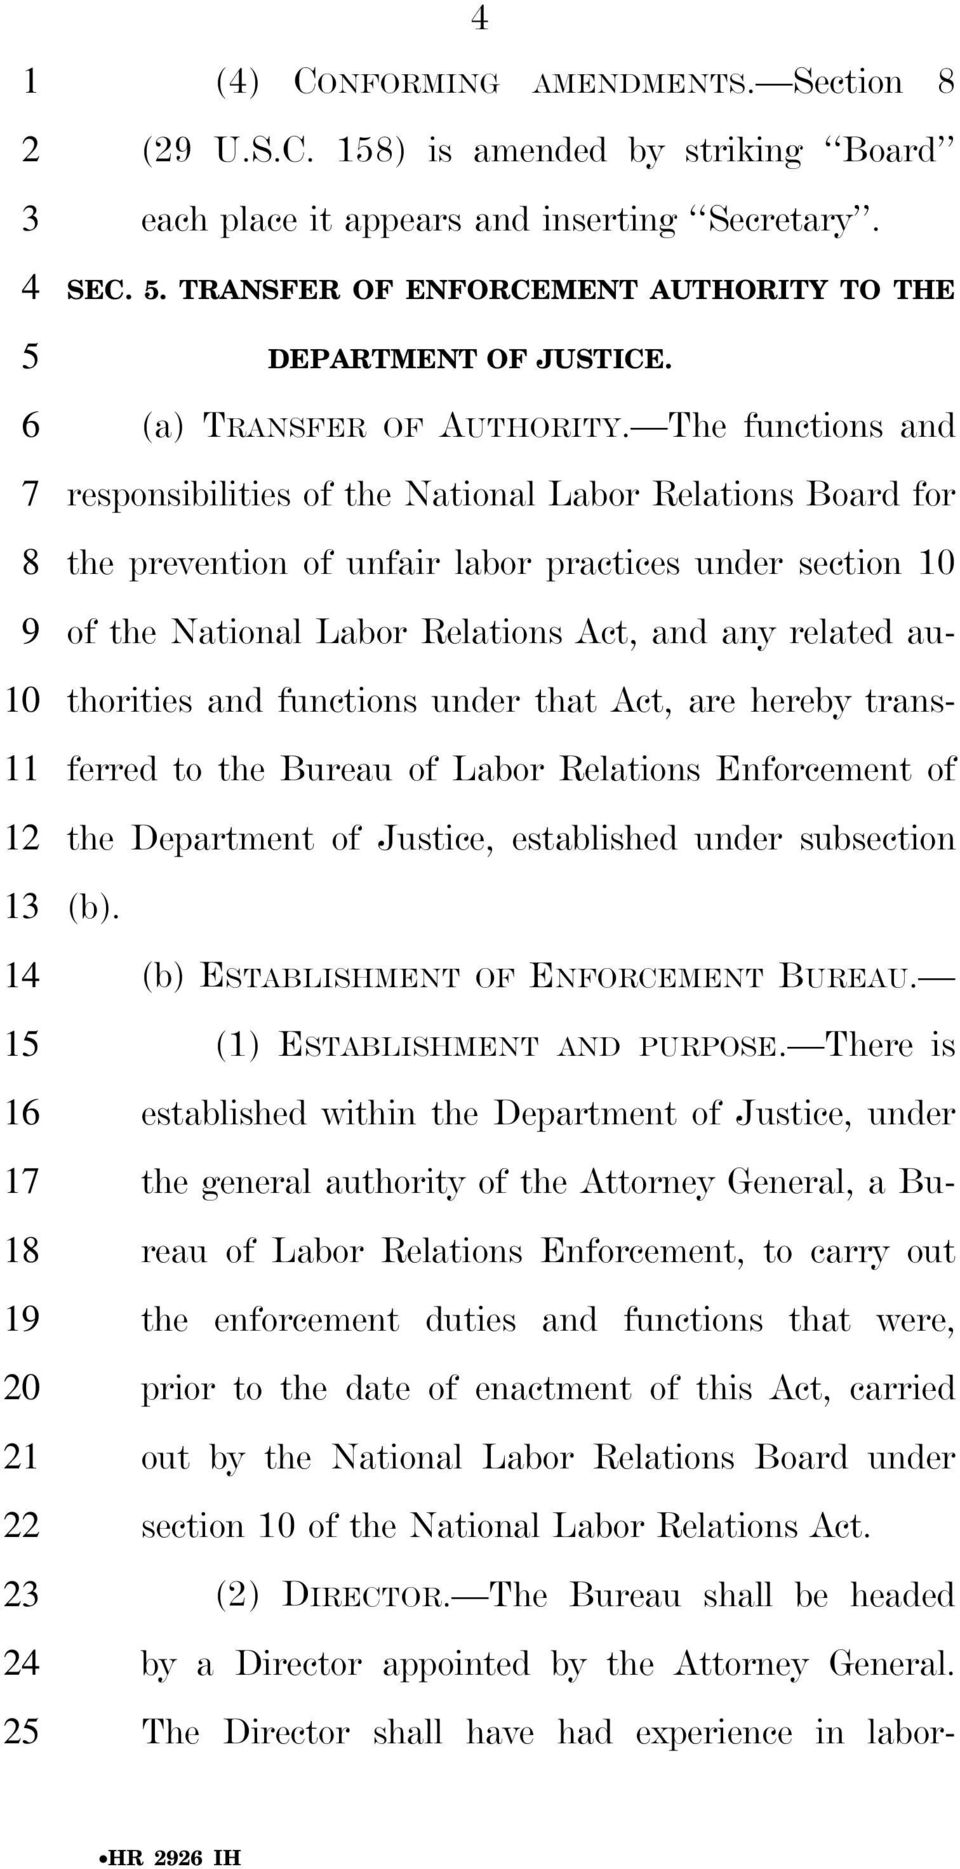 The functions and responsibilities of the National Labor Relations Board for the prevention of unfair labor practices under section of the National Labor Relations Act, and any related authorities